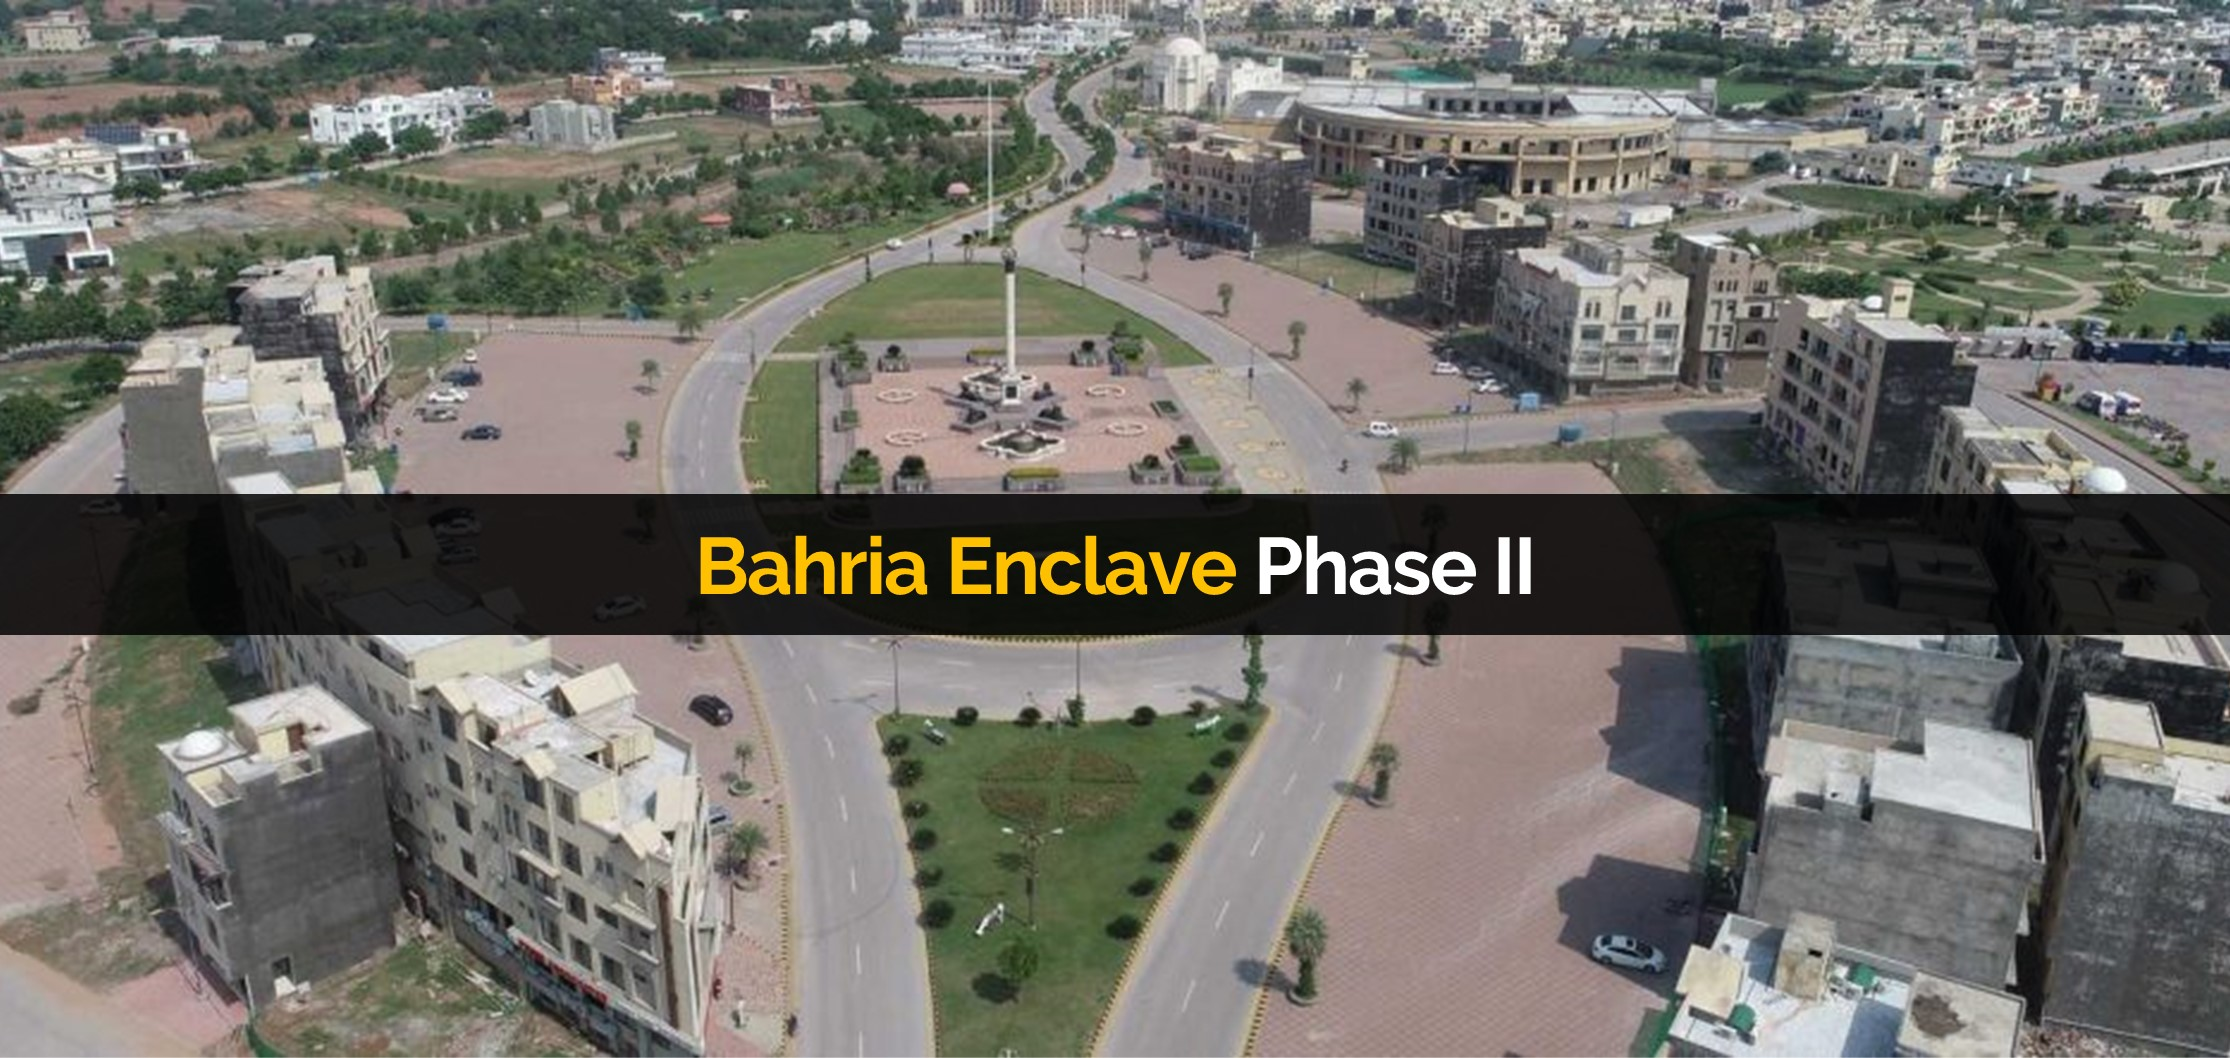 Bahria Enclave Phase II